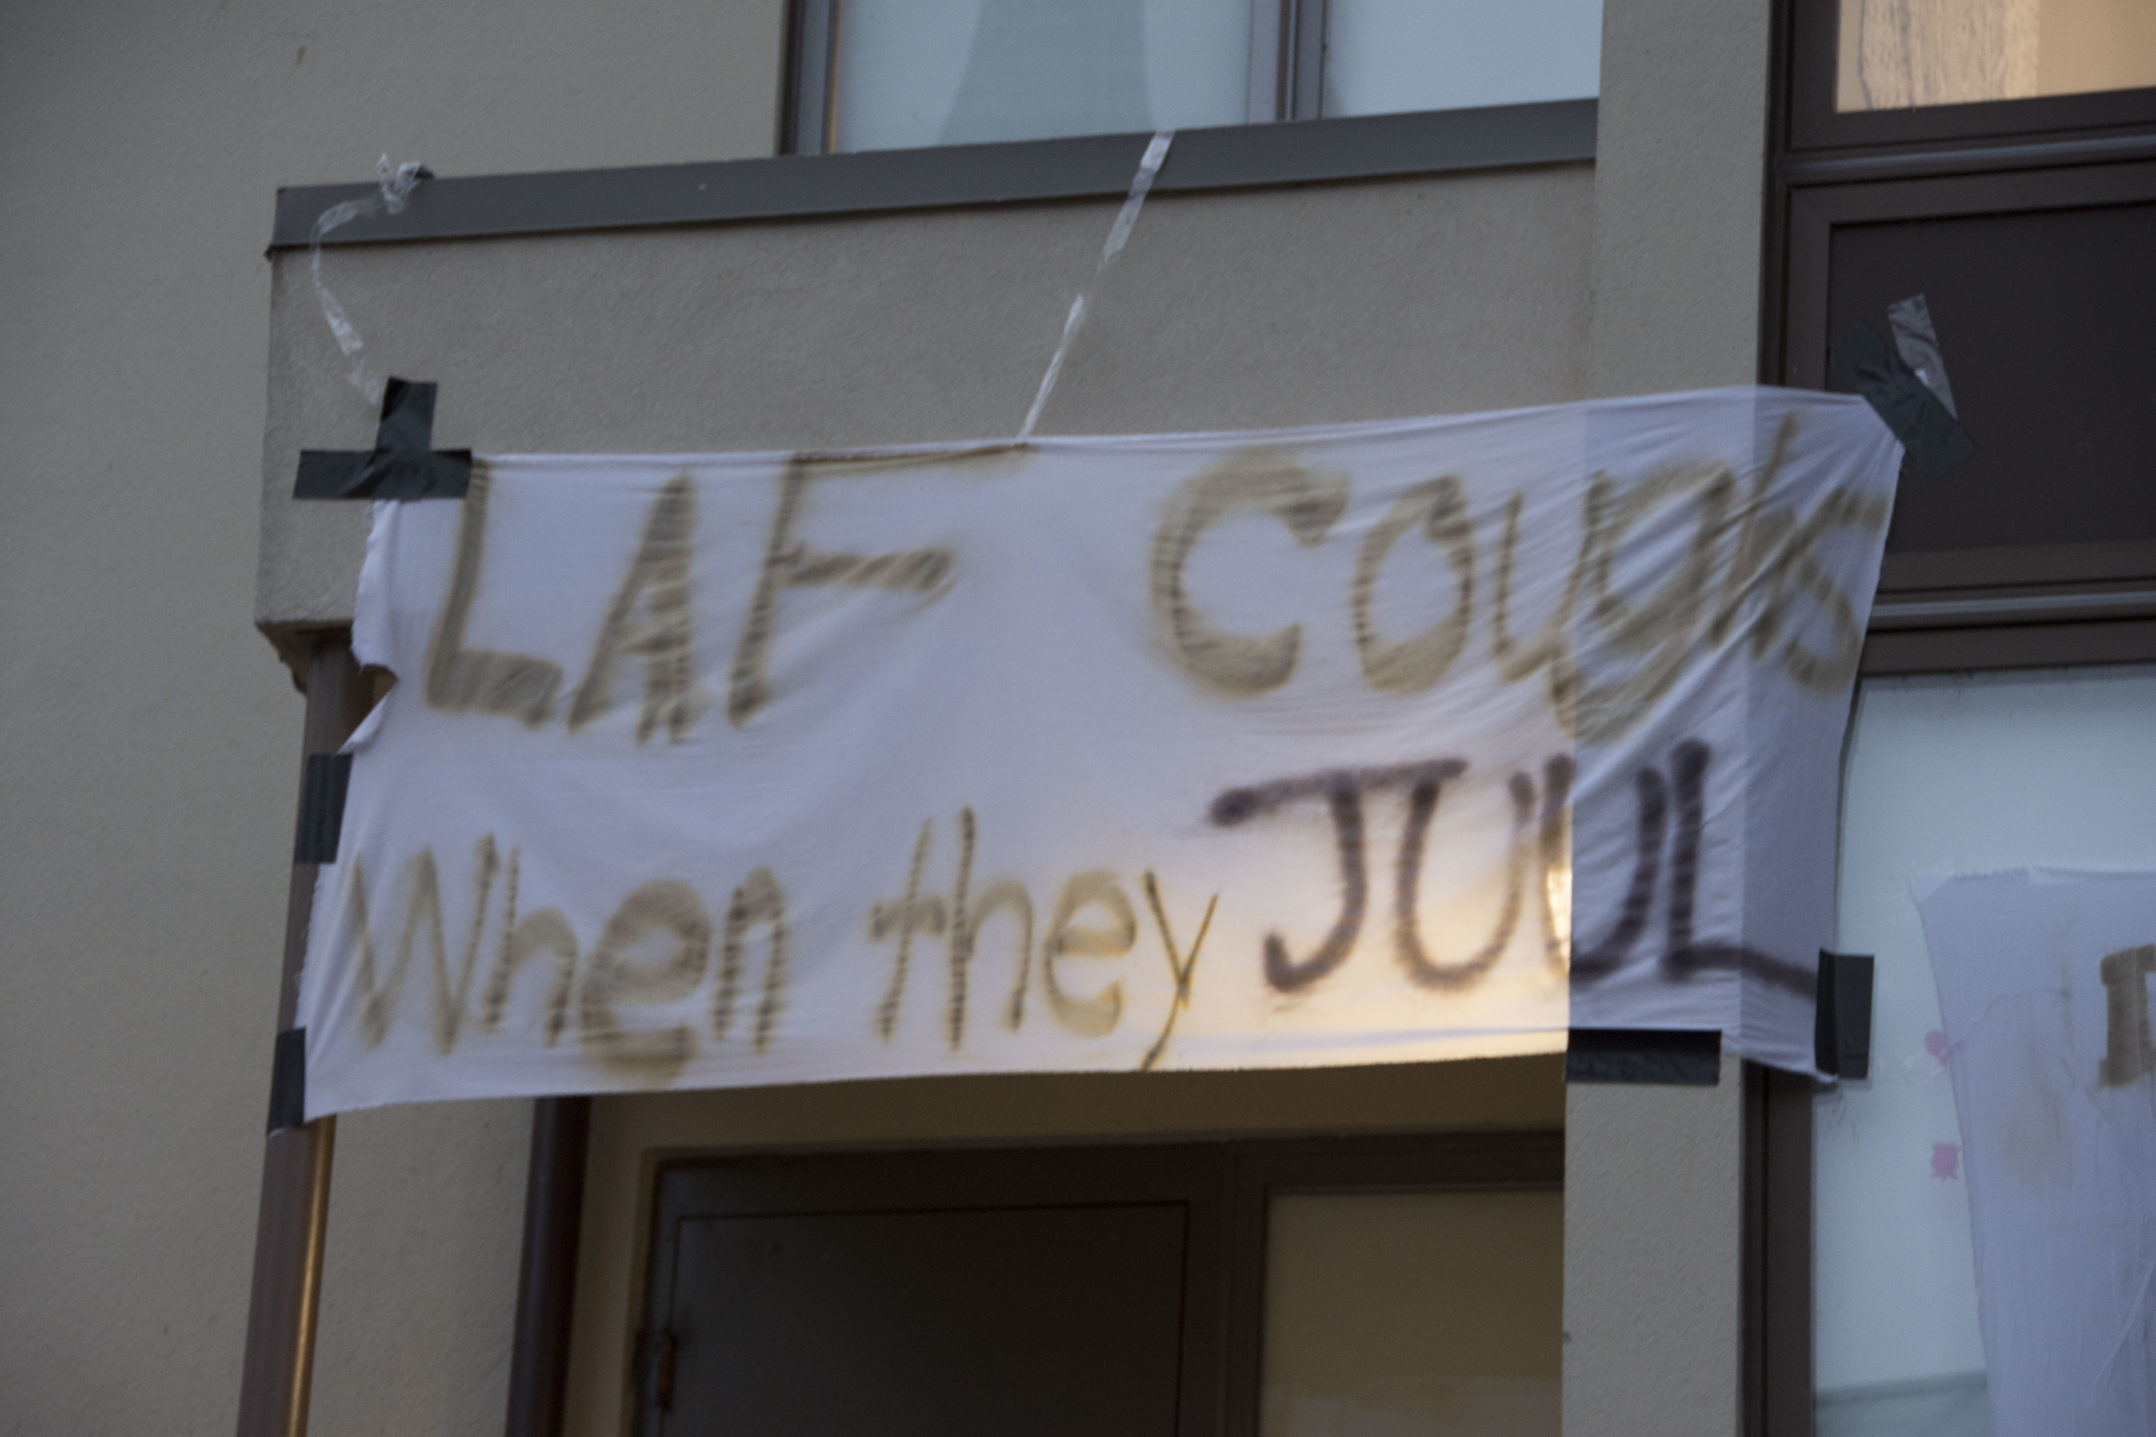 "A sign reading ""Lafayette coughs when they Juul"" hangs on a Trembley apartment on Wednesday, Nov. 15, 2017. The sign is referencing the popular electronic cigarette, Juul. (Annie Henry/B&W Staff)"